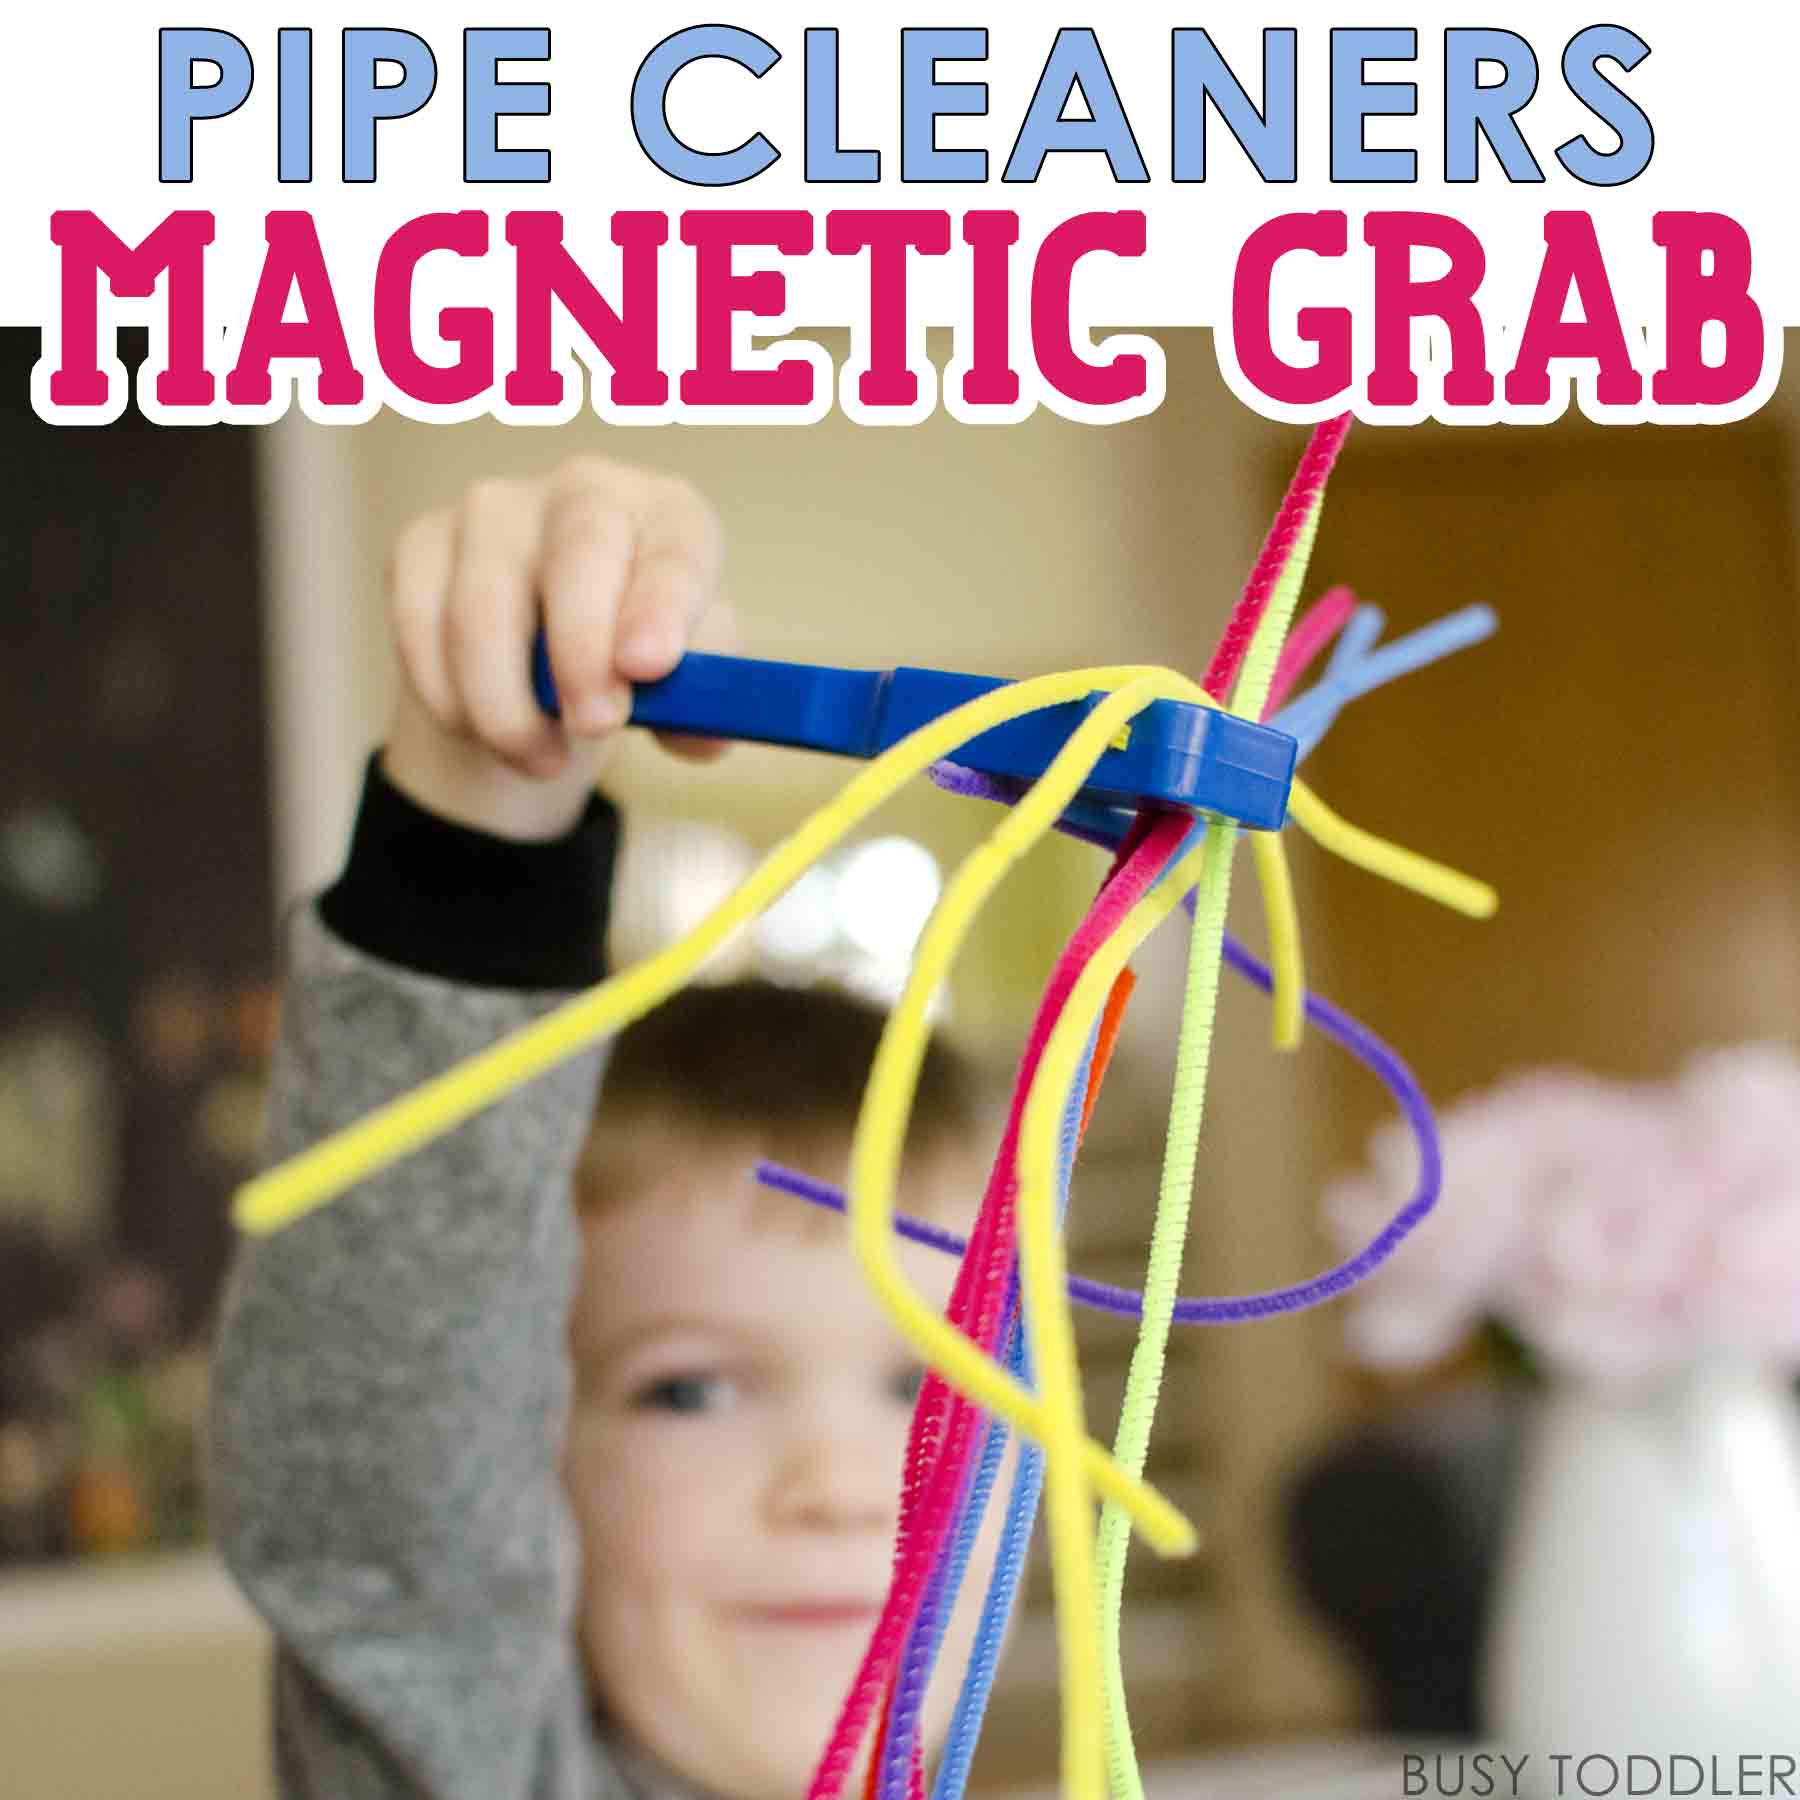 PIPE CLEANERS MAGNETIC GRAB: You've got to try this simple activity using magnets and pipe cleaners. An easy indoor activity for toddlers and preschoolers. It's perfect for a quick idea on a rainy day!